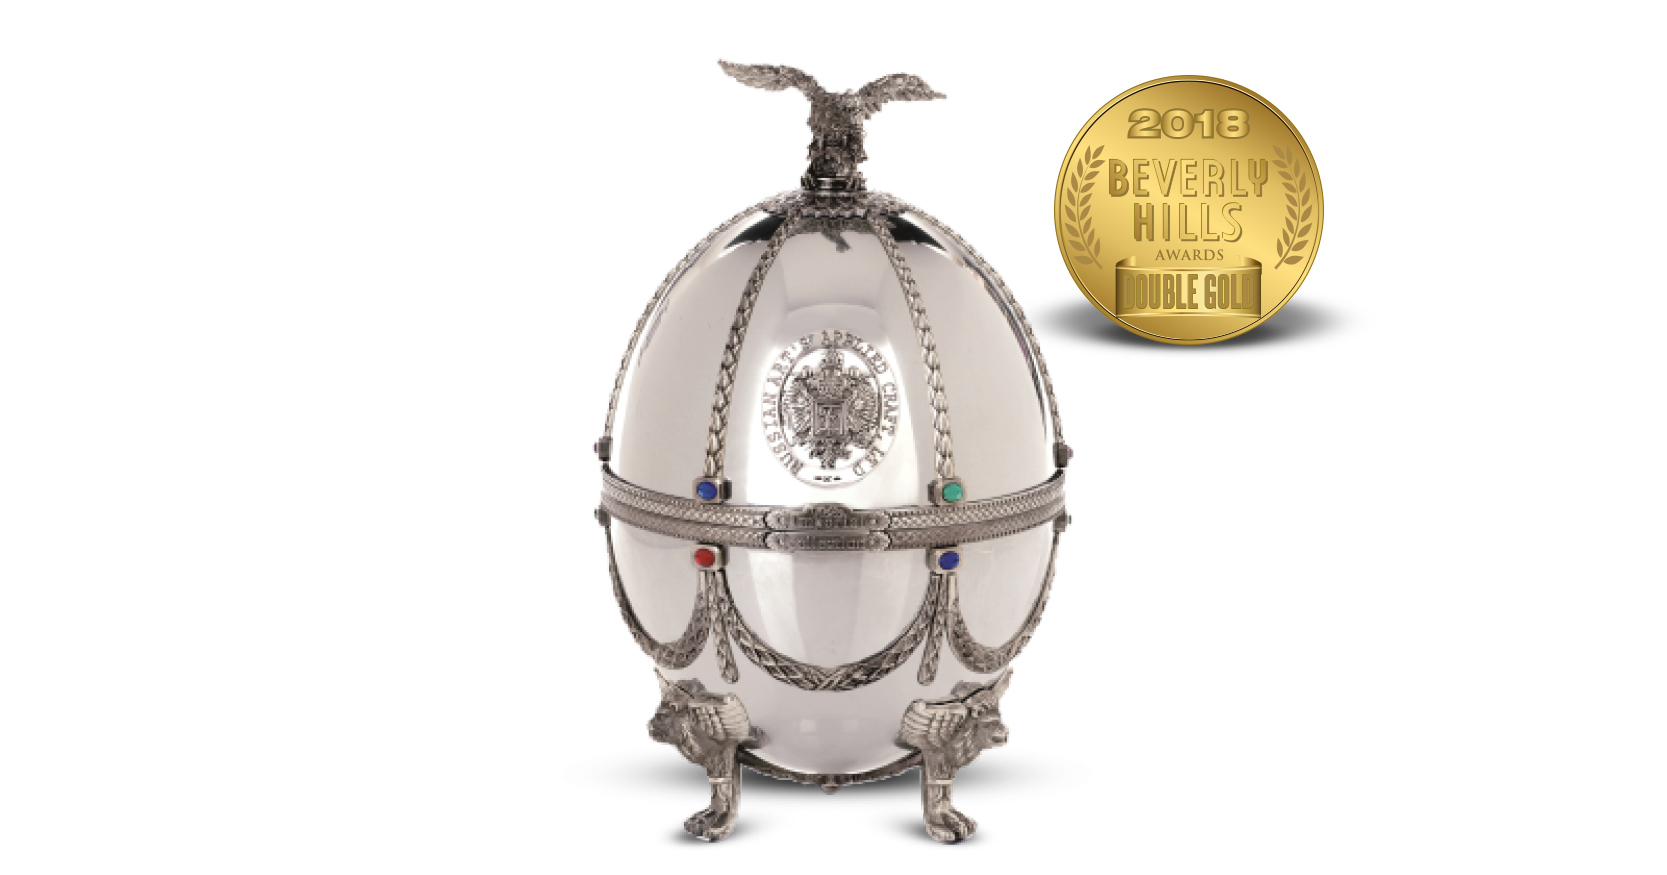 Carafe in Silver Faberge Egg Imperial Collection Super Premium Vodka